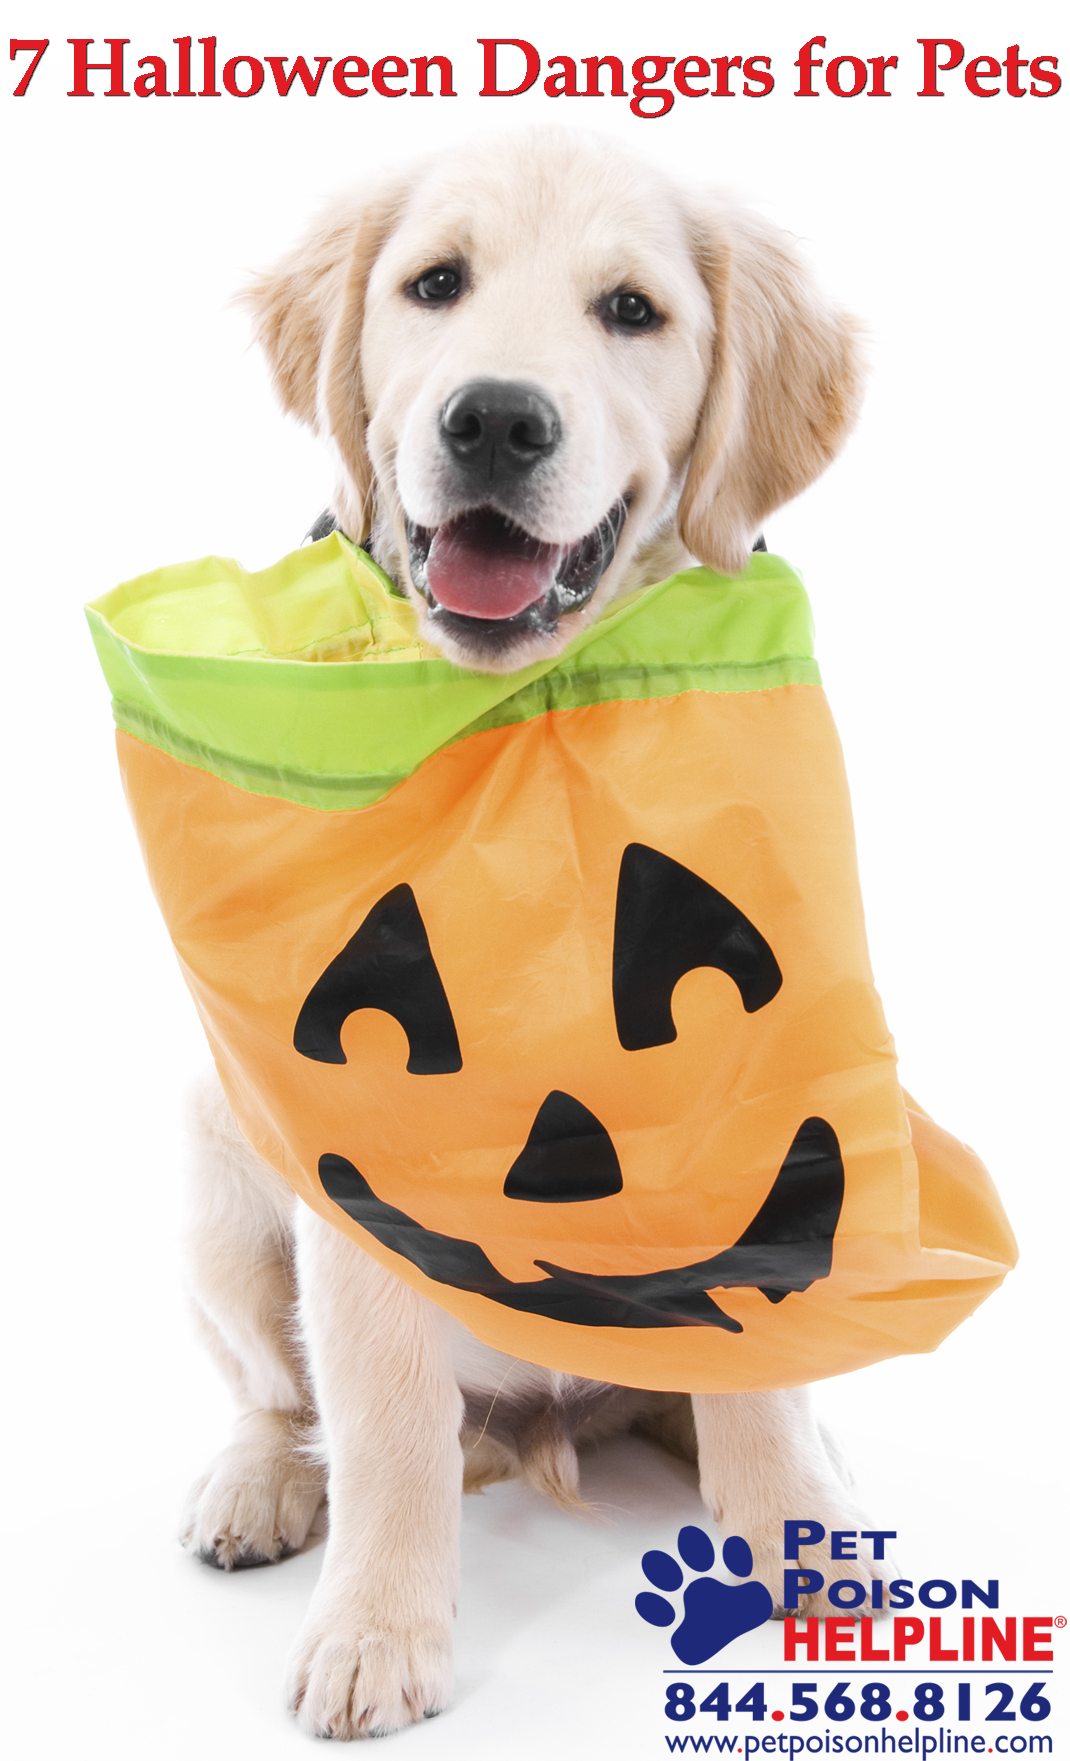 Halloween Dangers for Dogs and Cats Halloween Safety